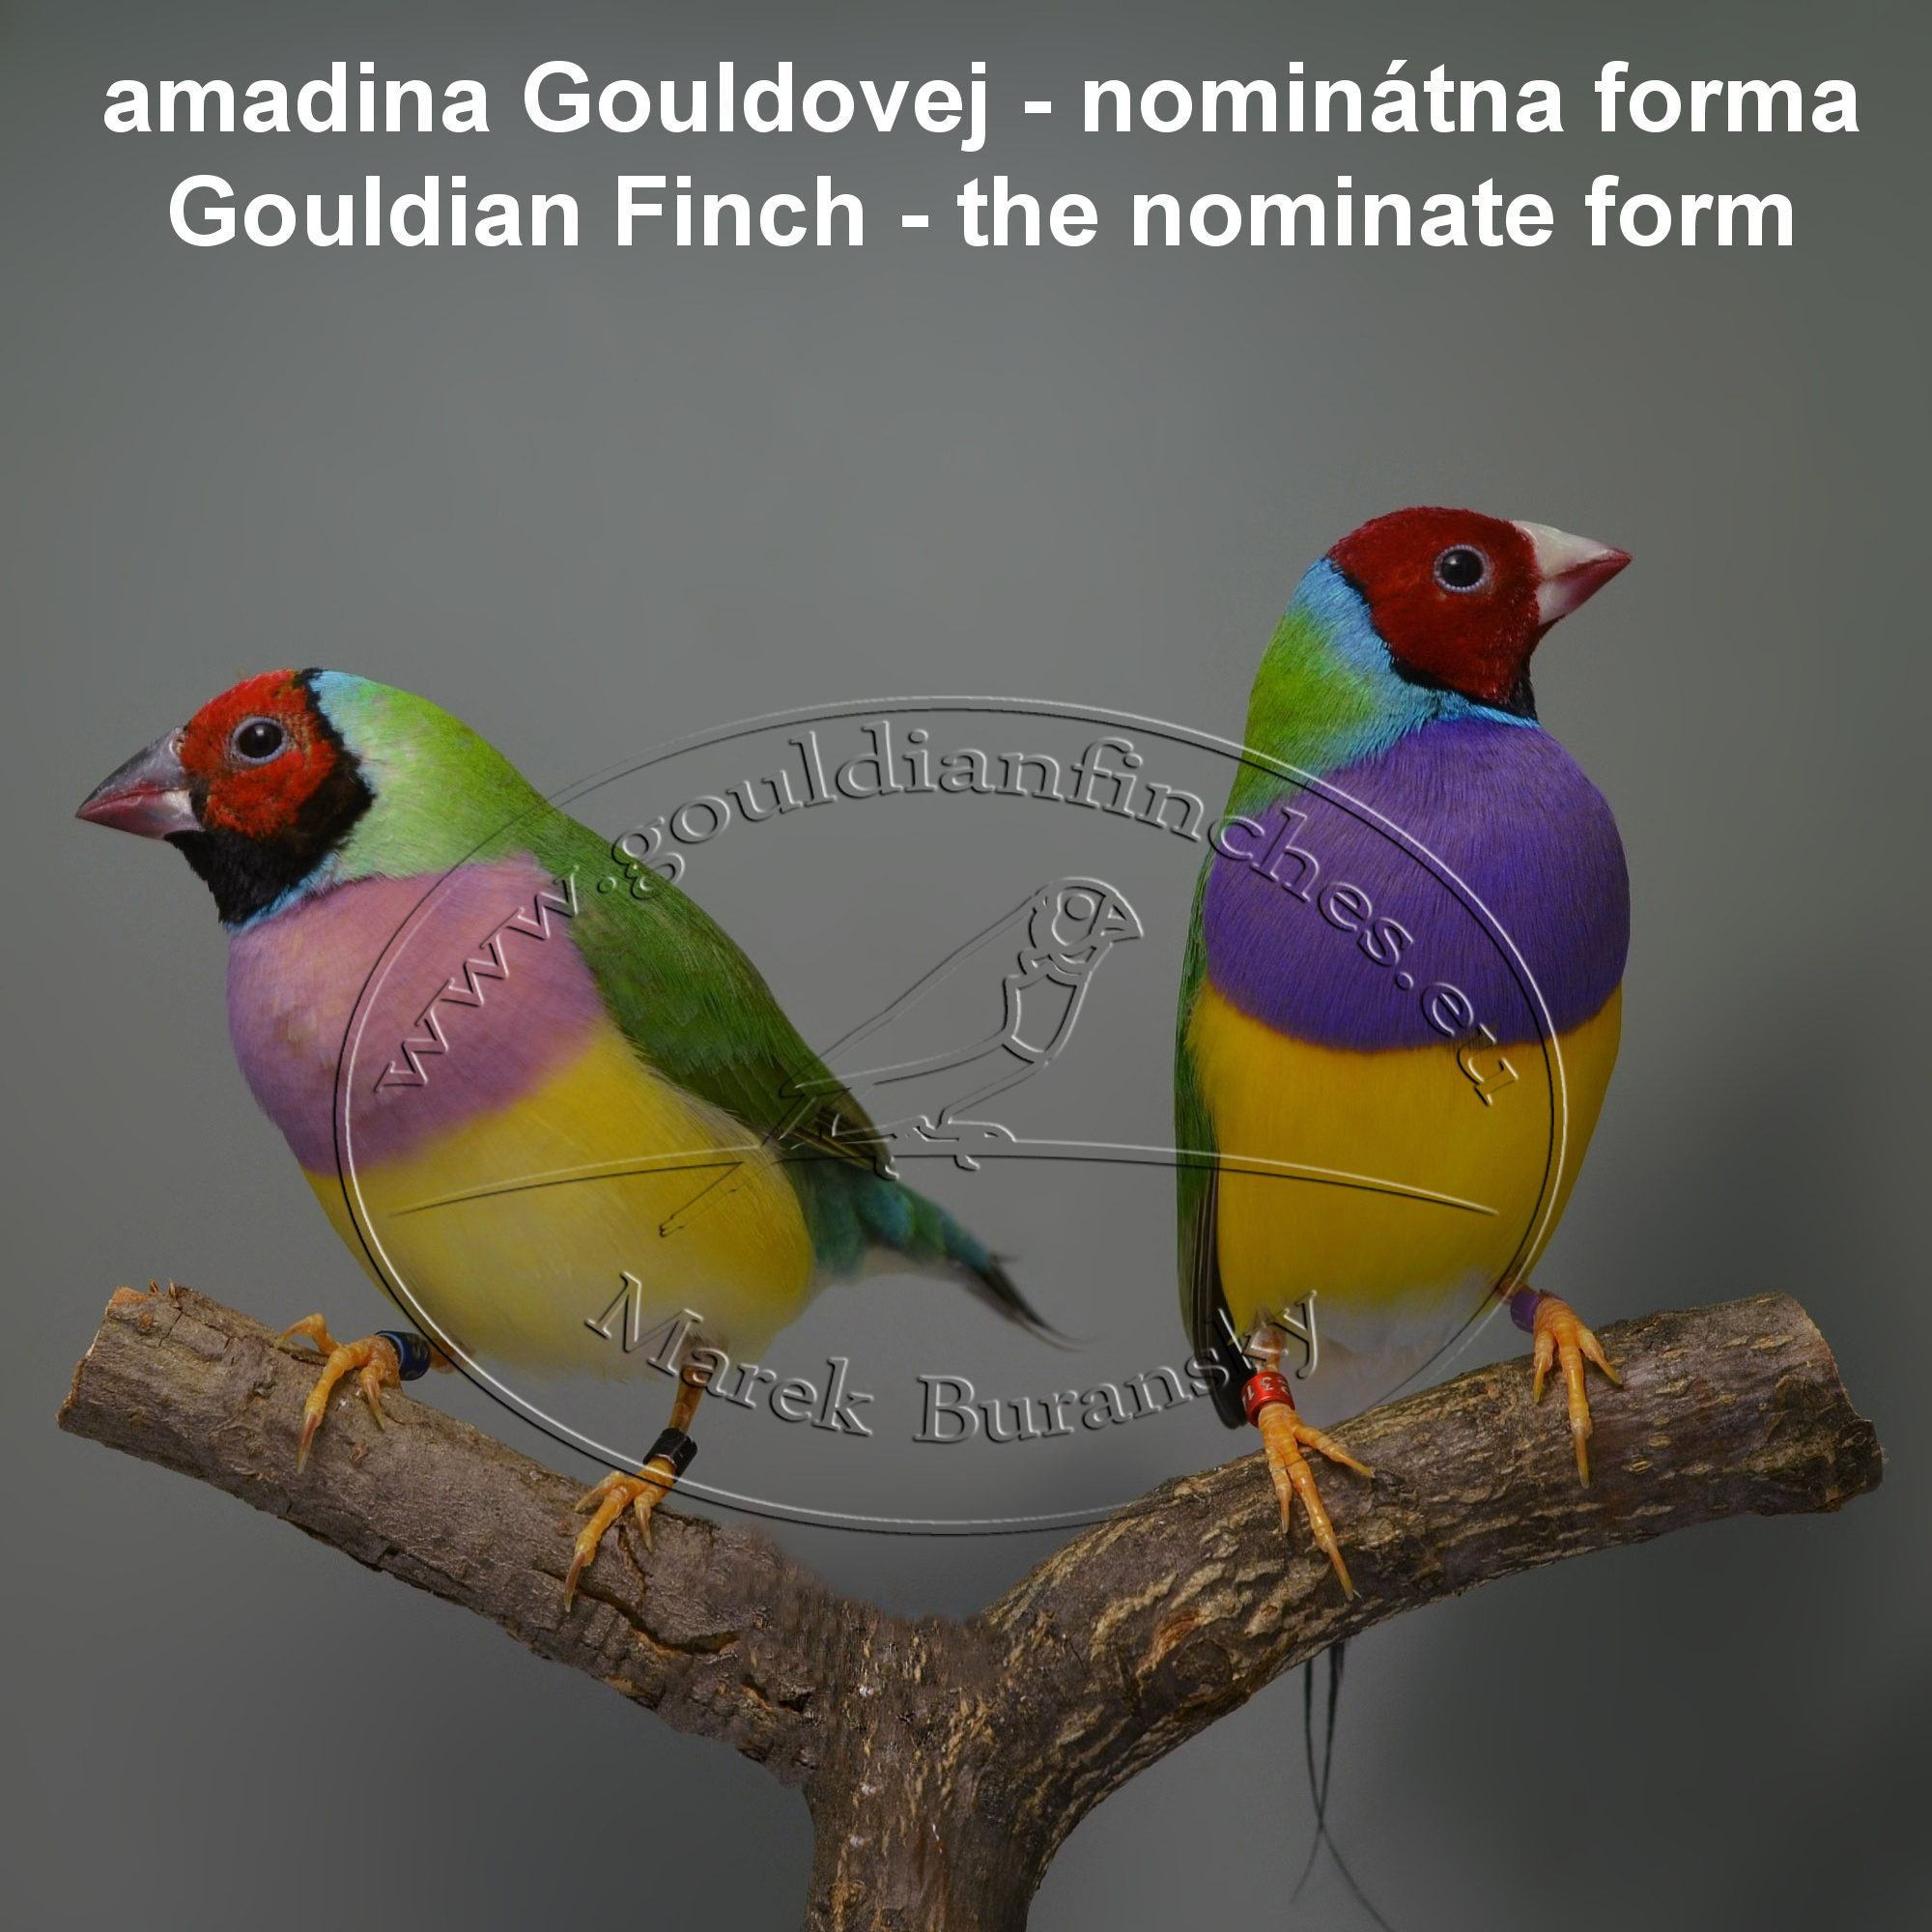 Gouldian finch - Green body, red head pair